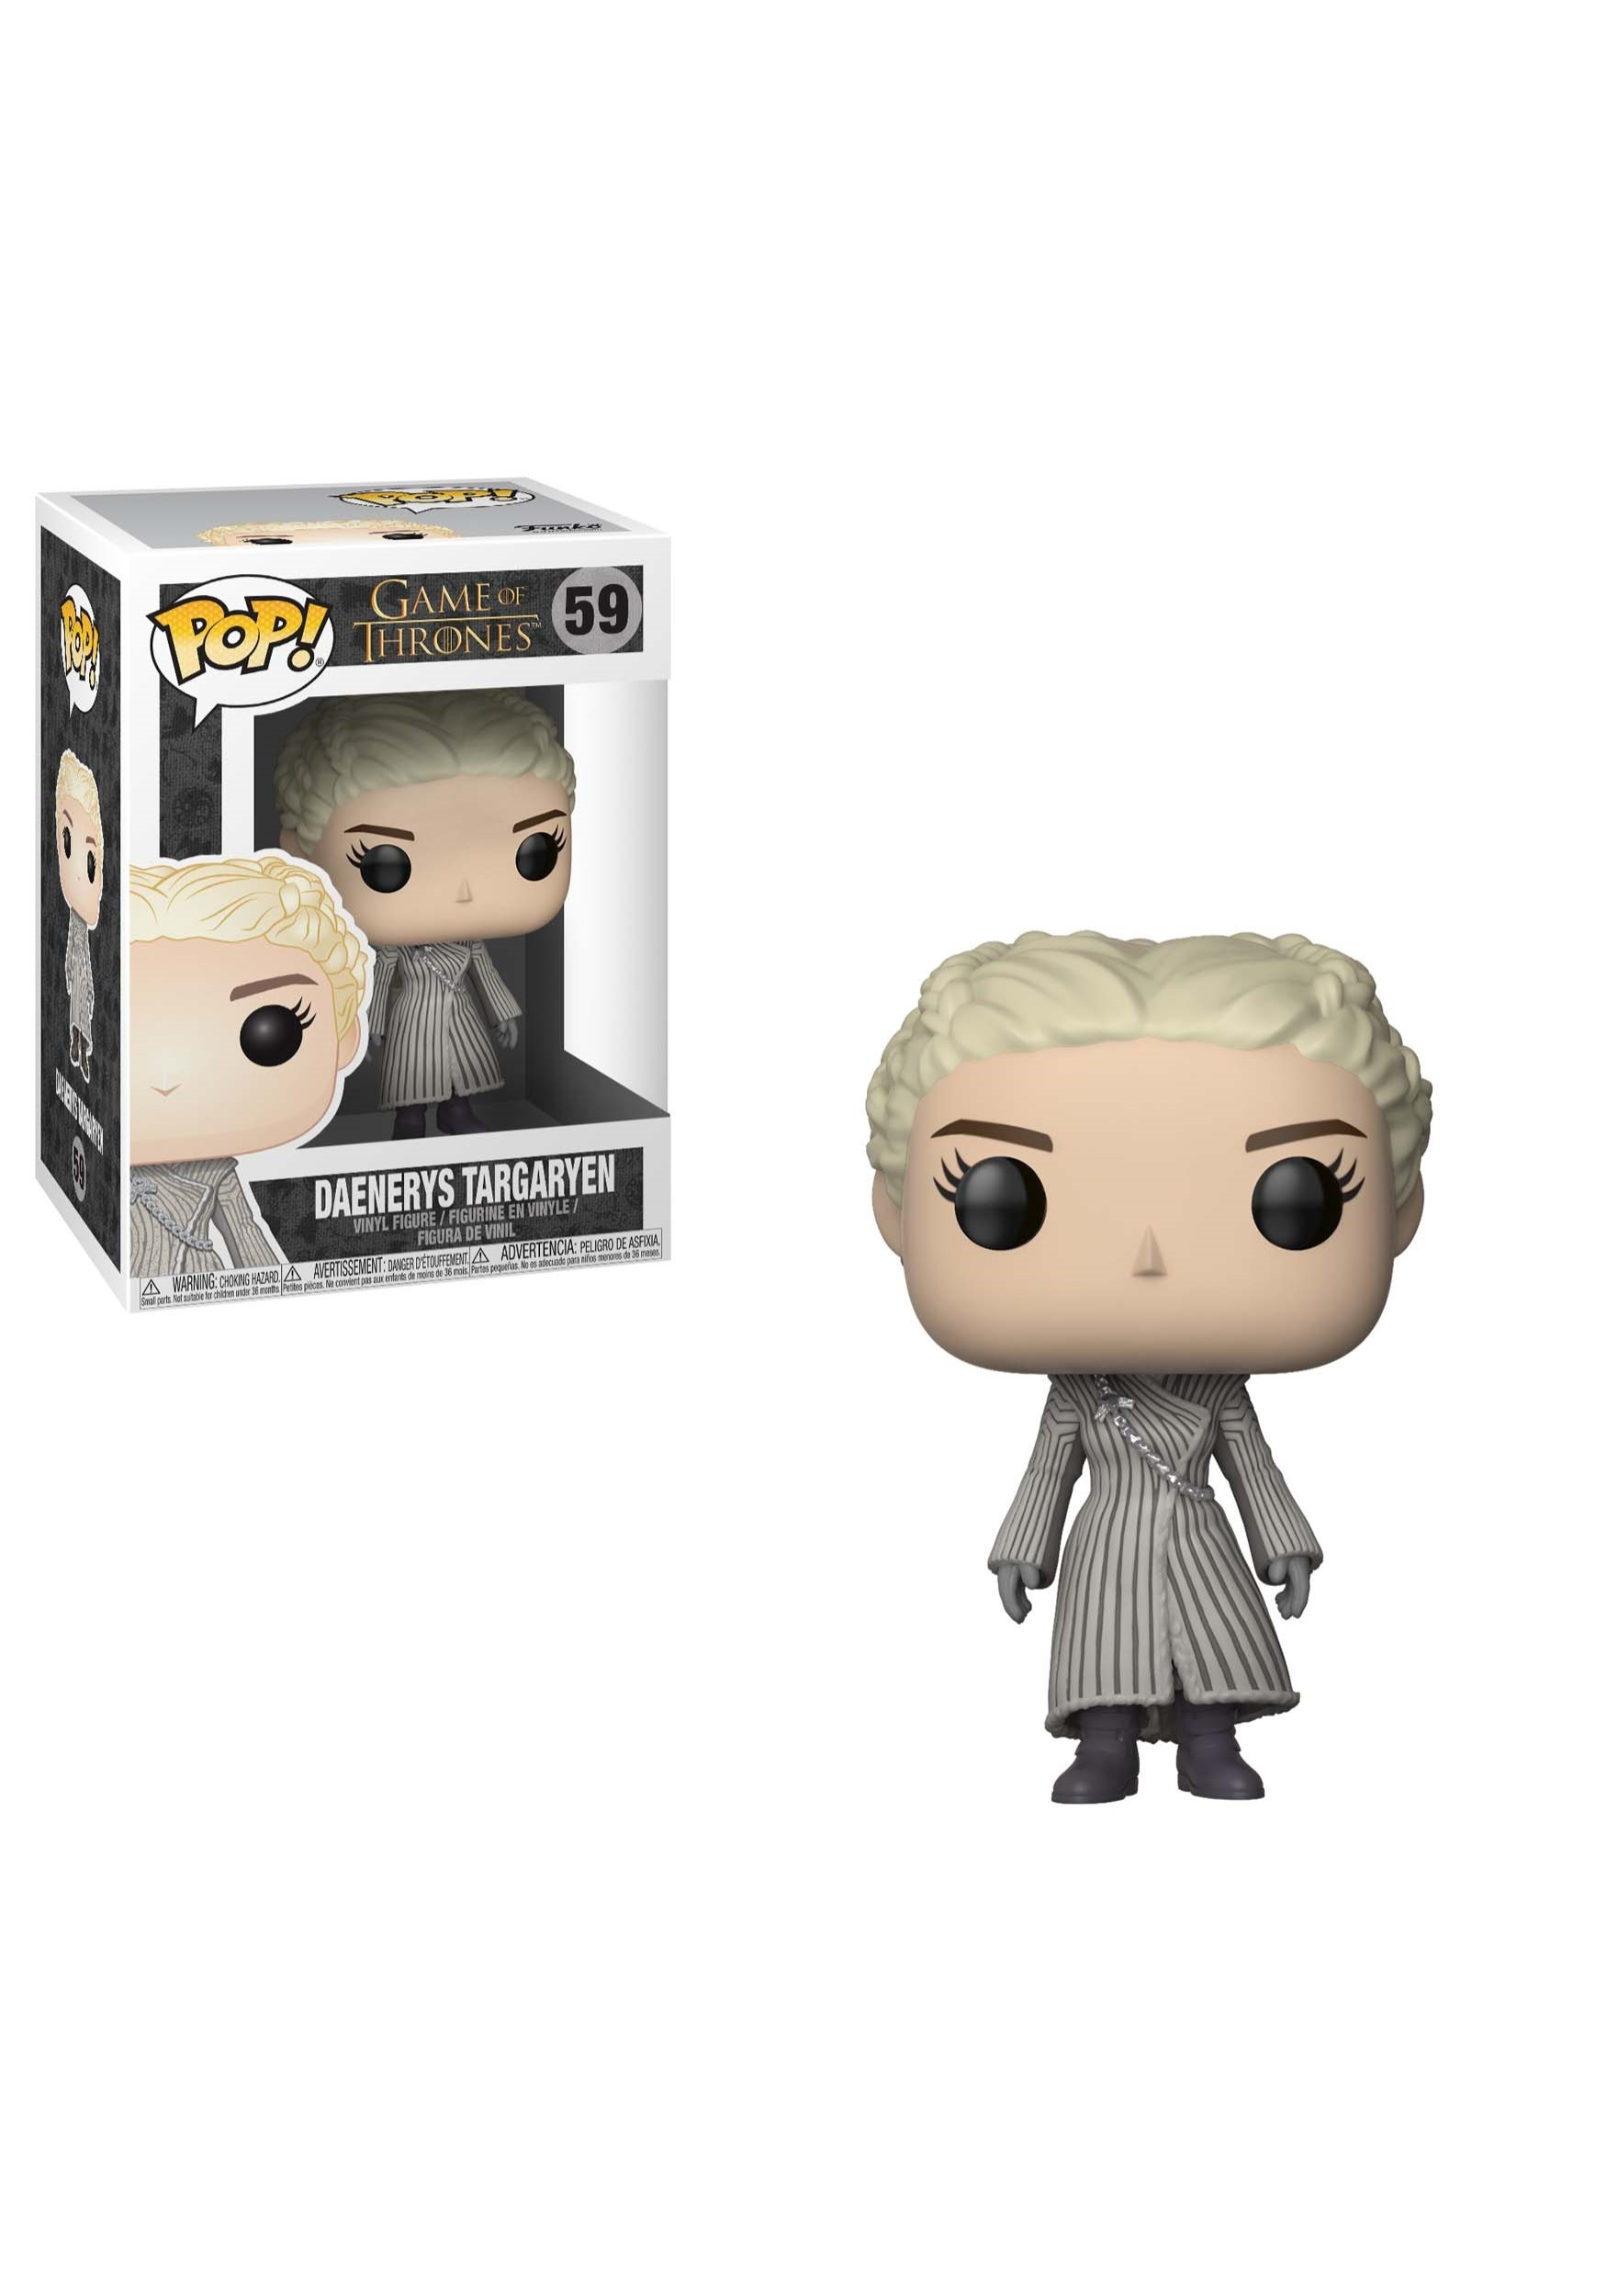 POP! TV: Game of Thrones Daenerys Targaryen Vinyl Figure